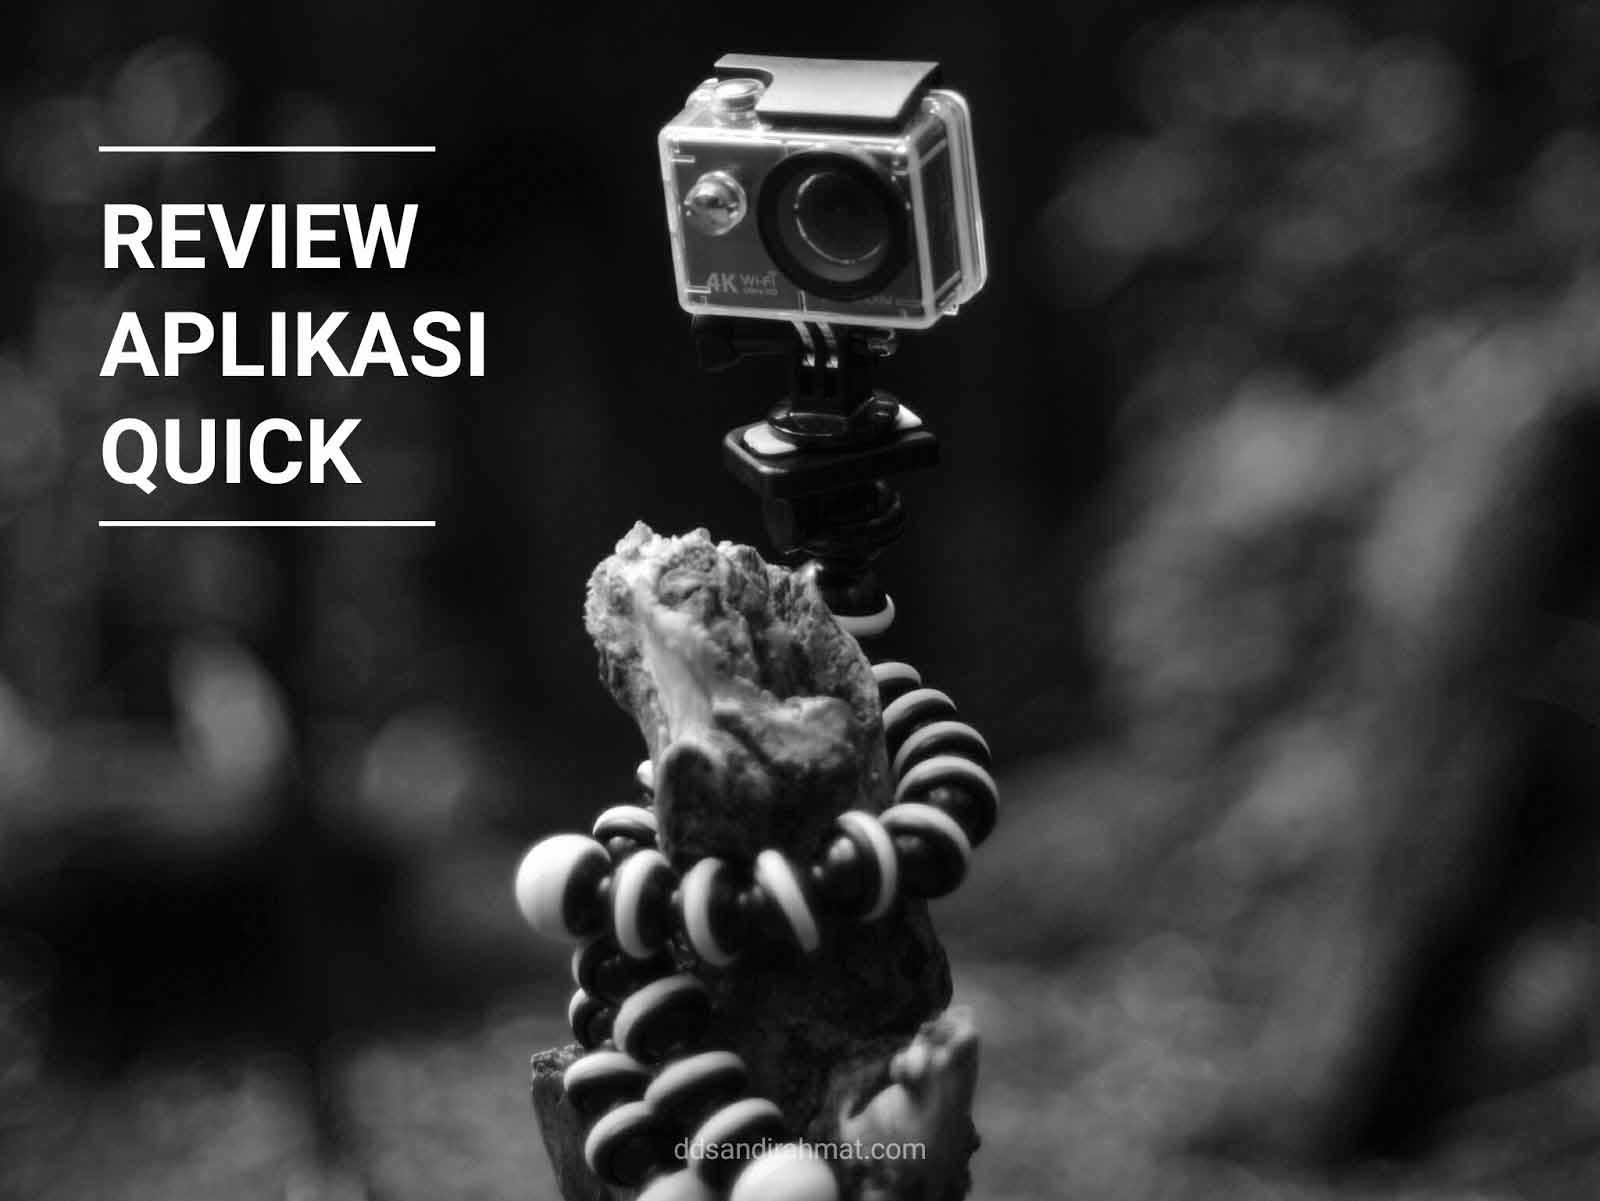 Review Aplikasi Edit Video Terbaik 2020 - Quick